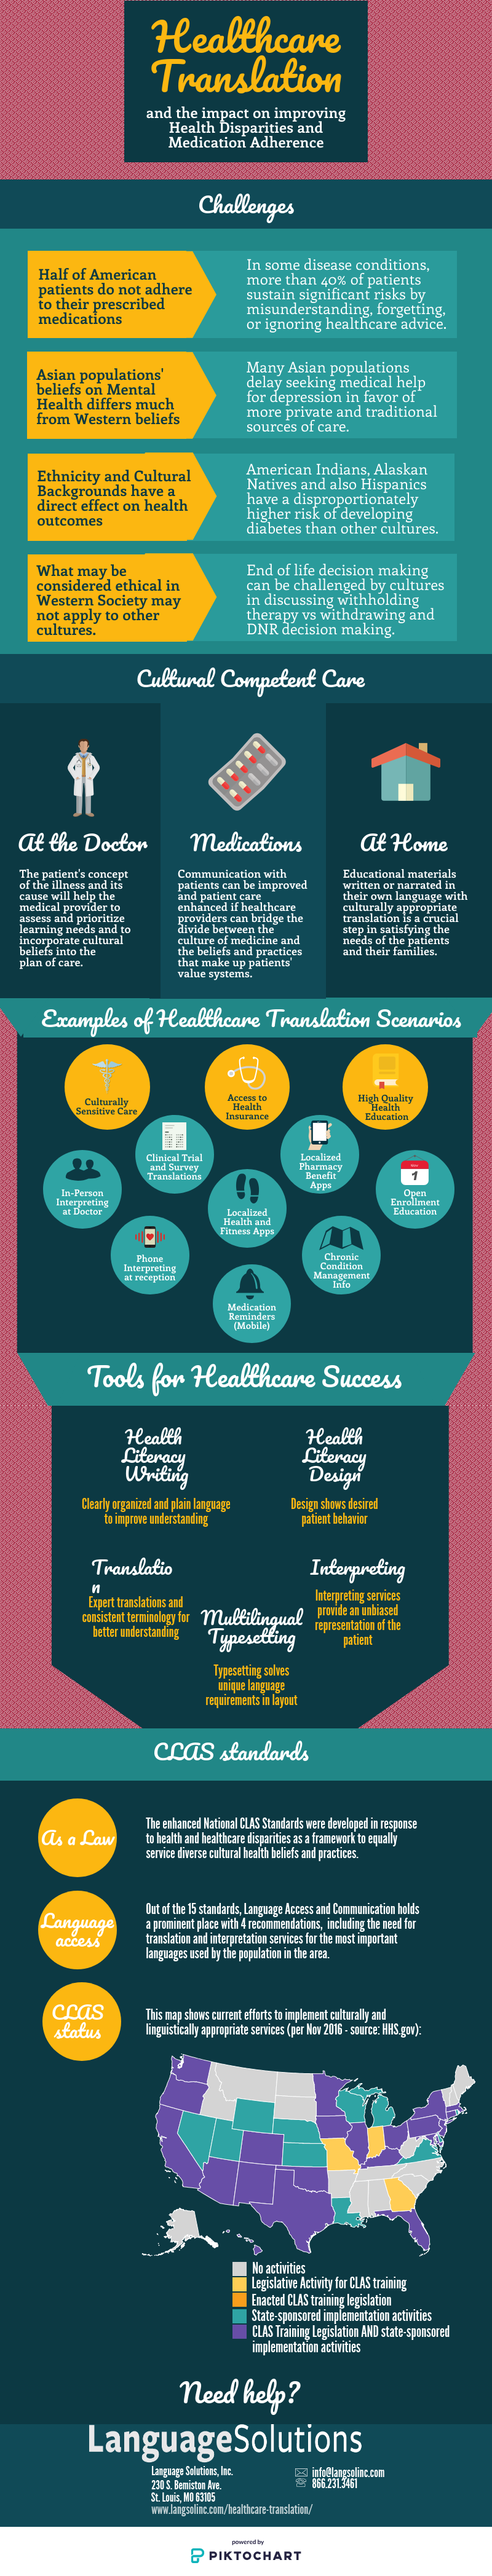 Infographic on healthcare translation affecting disparities and adherence